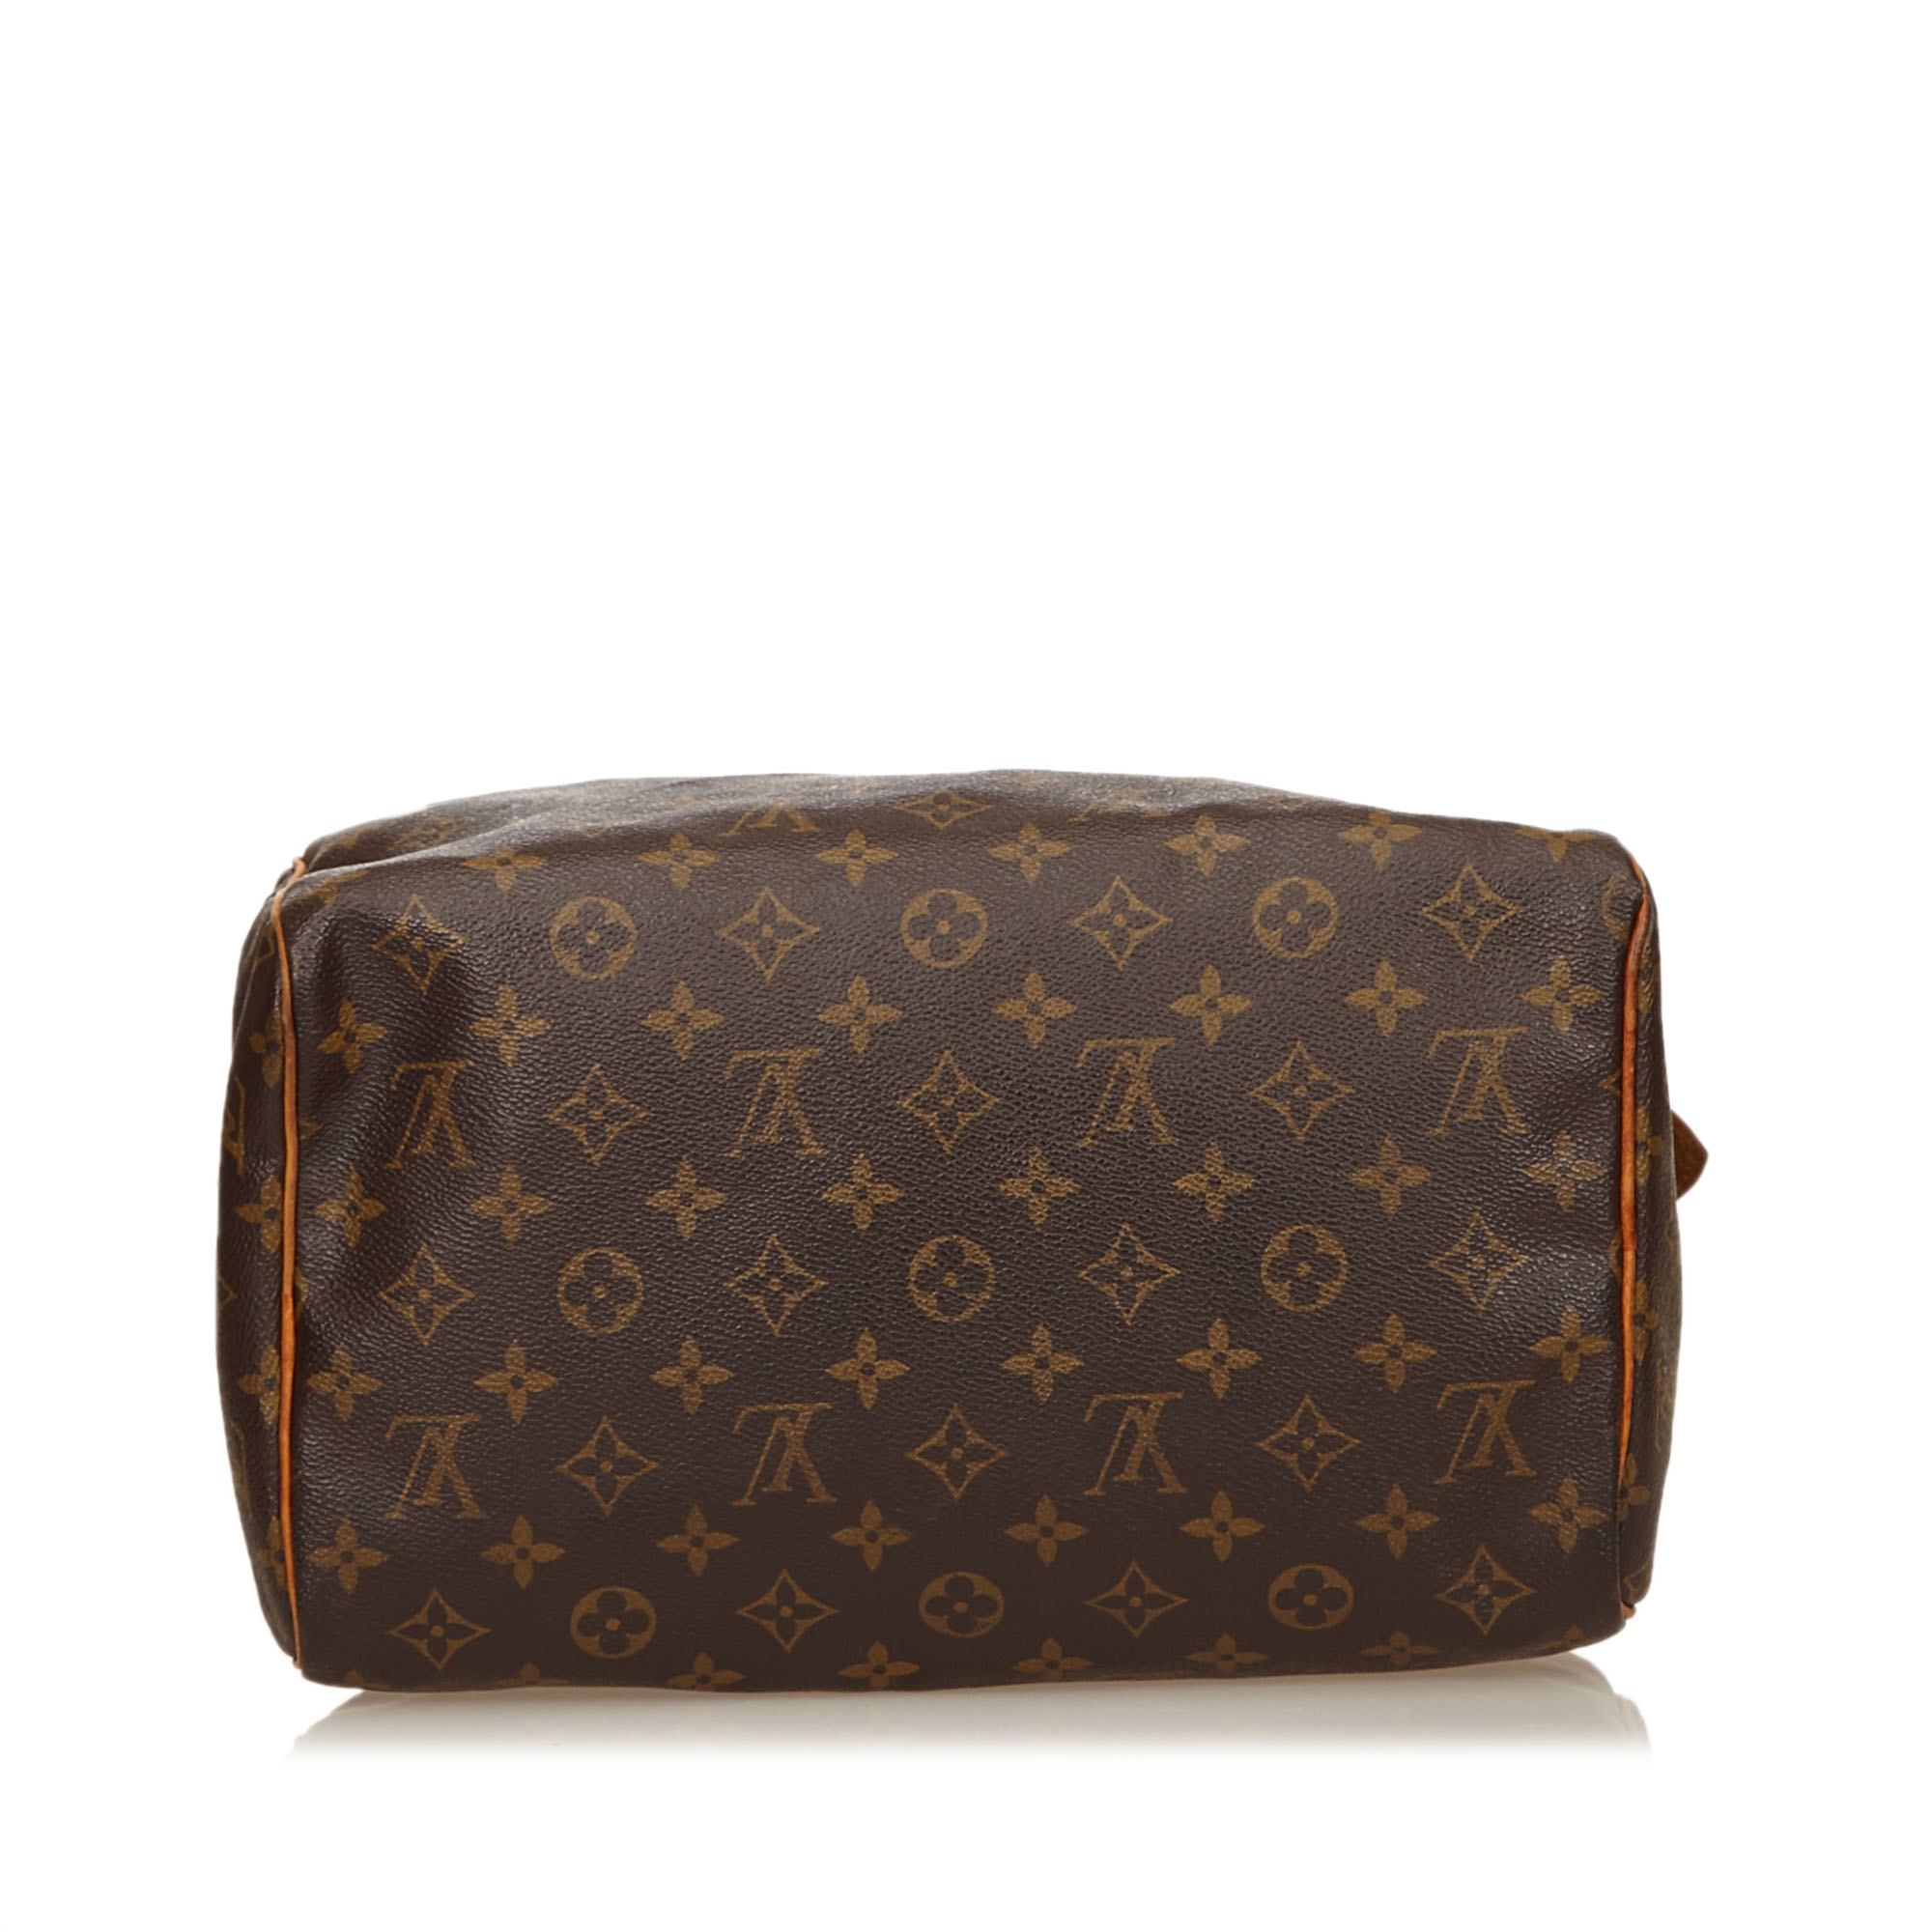 Louis Vuitton Monogram Canvas Speedy 30